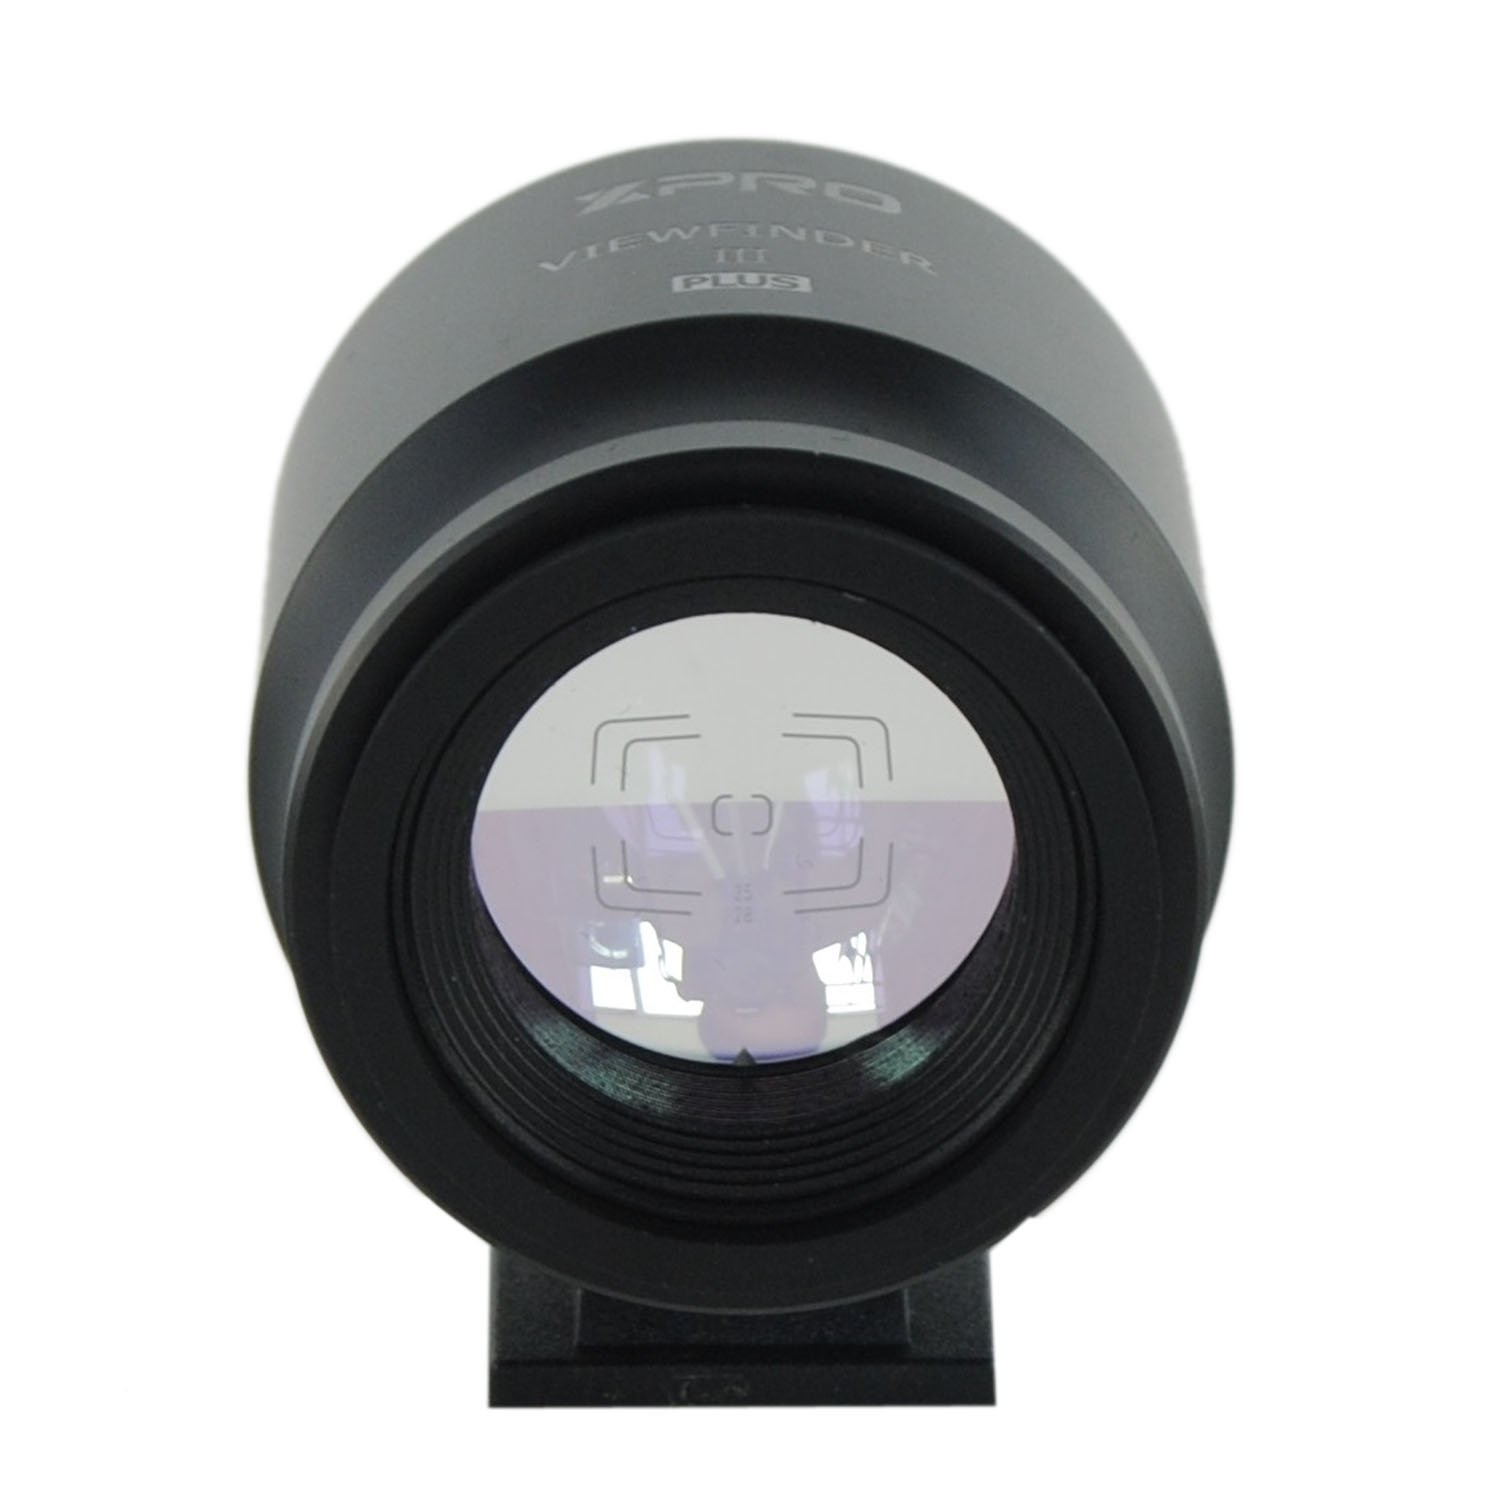 Camera Viewfinder with Optical External Finder Frame for Canon Nikon Olympus Leica Pentax Hasselblad Fuji GR X70 Ricoh DP Sigma VF-11 Sony RX1 Digital Cameras (Black) by XPRO